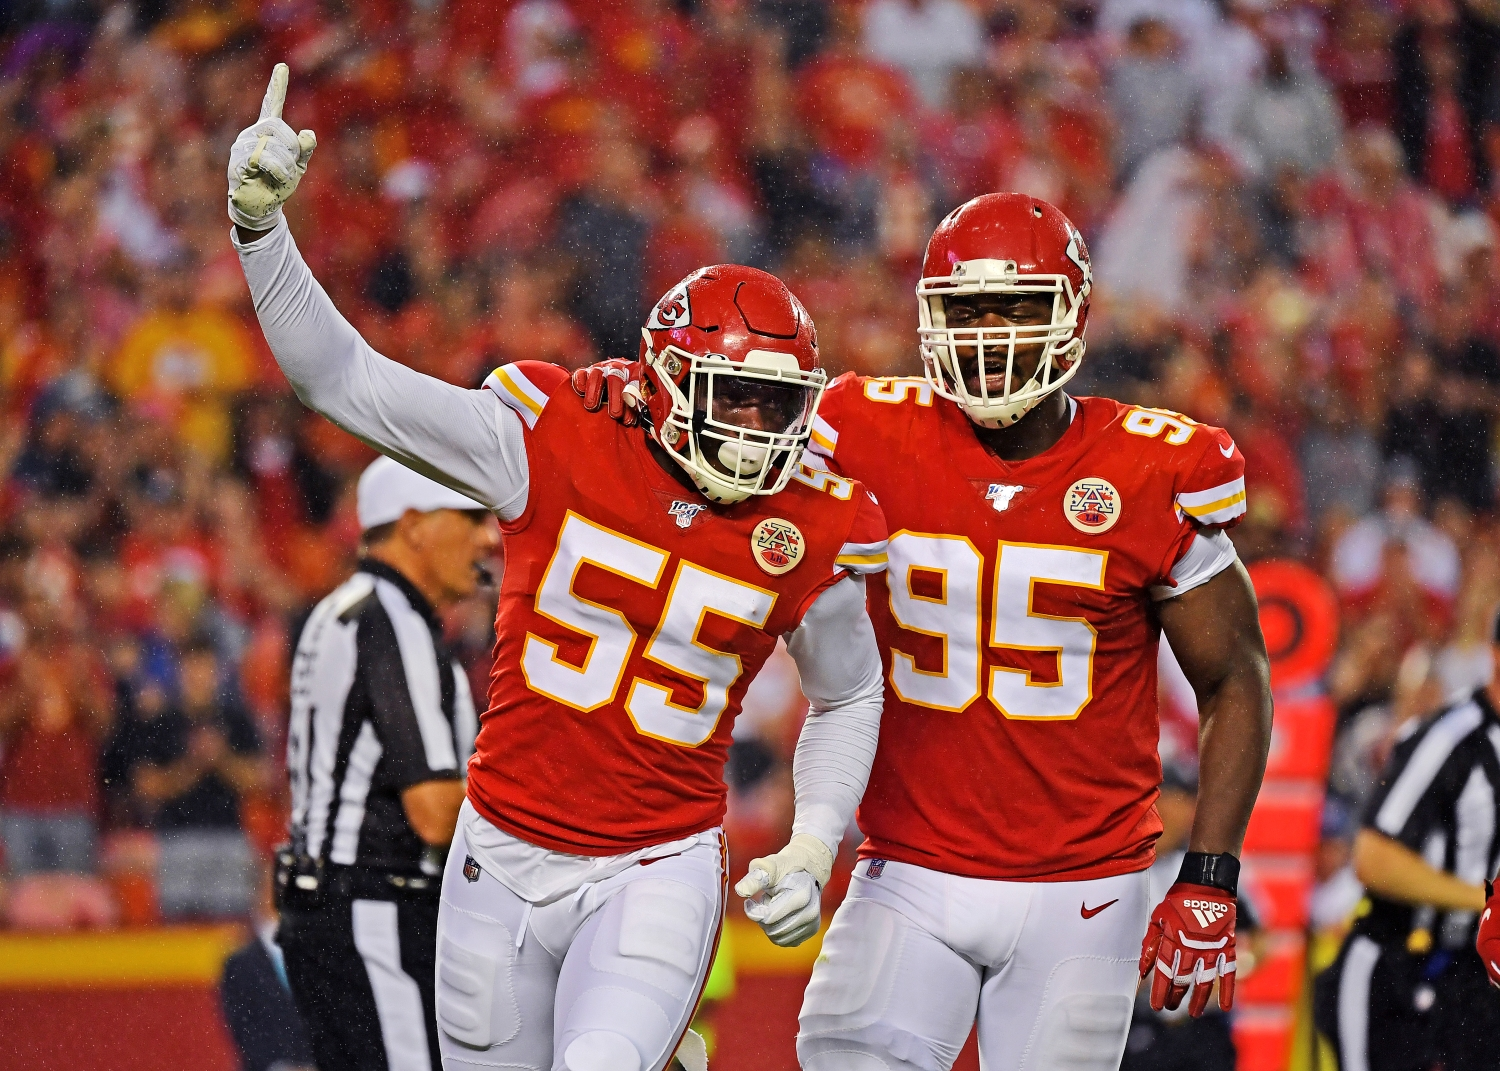 The Kansas City Chiefs Just Made a Dangerous $5 Million Addition to Their Star-Studded Defensive Line